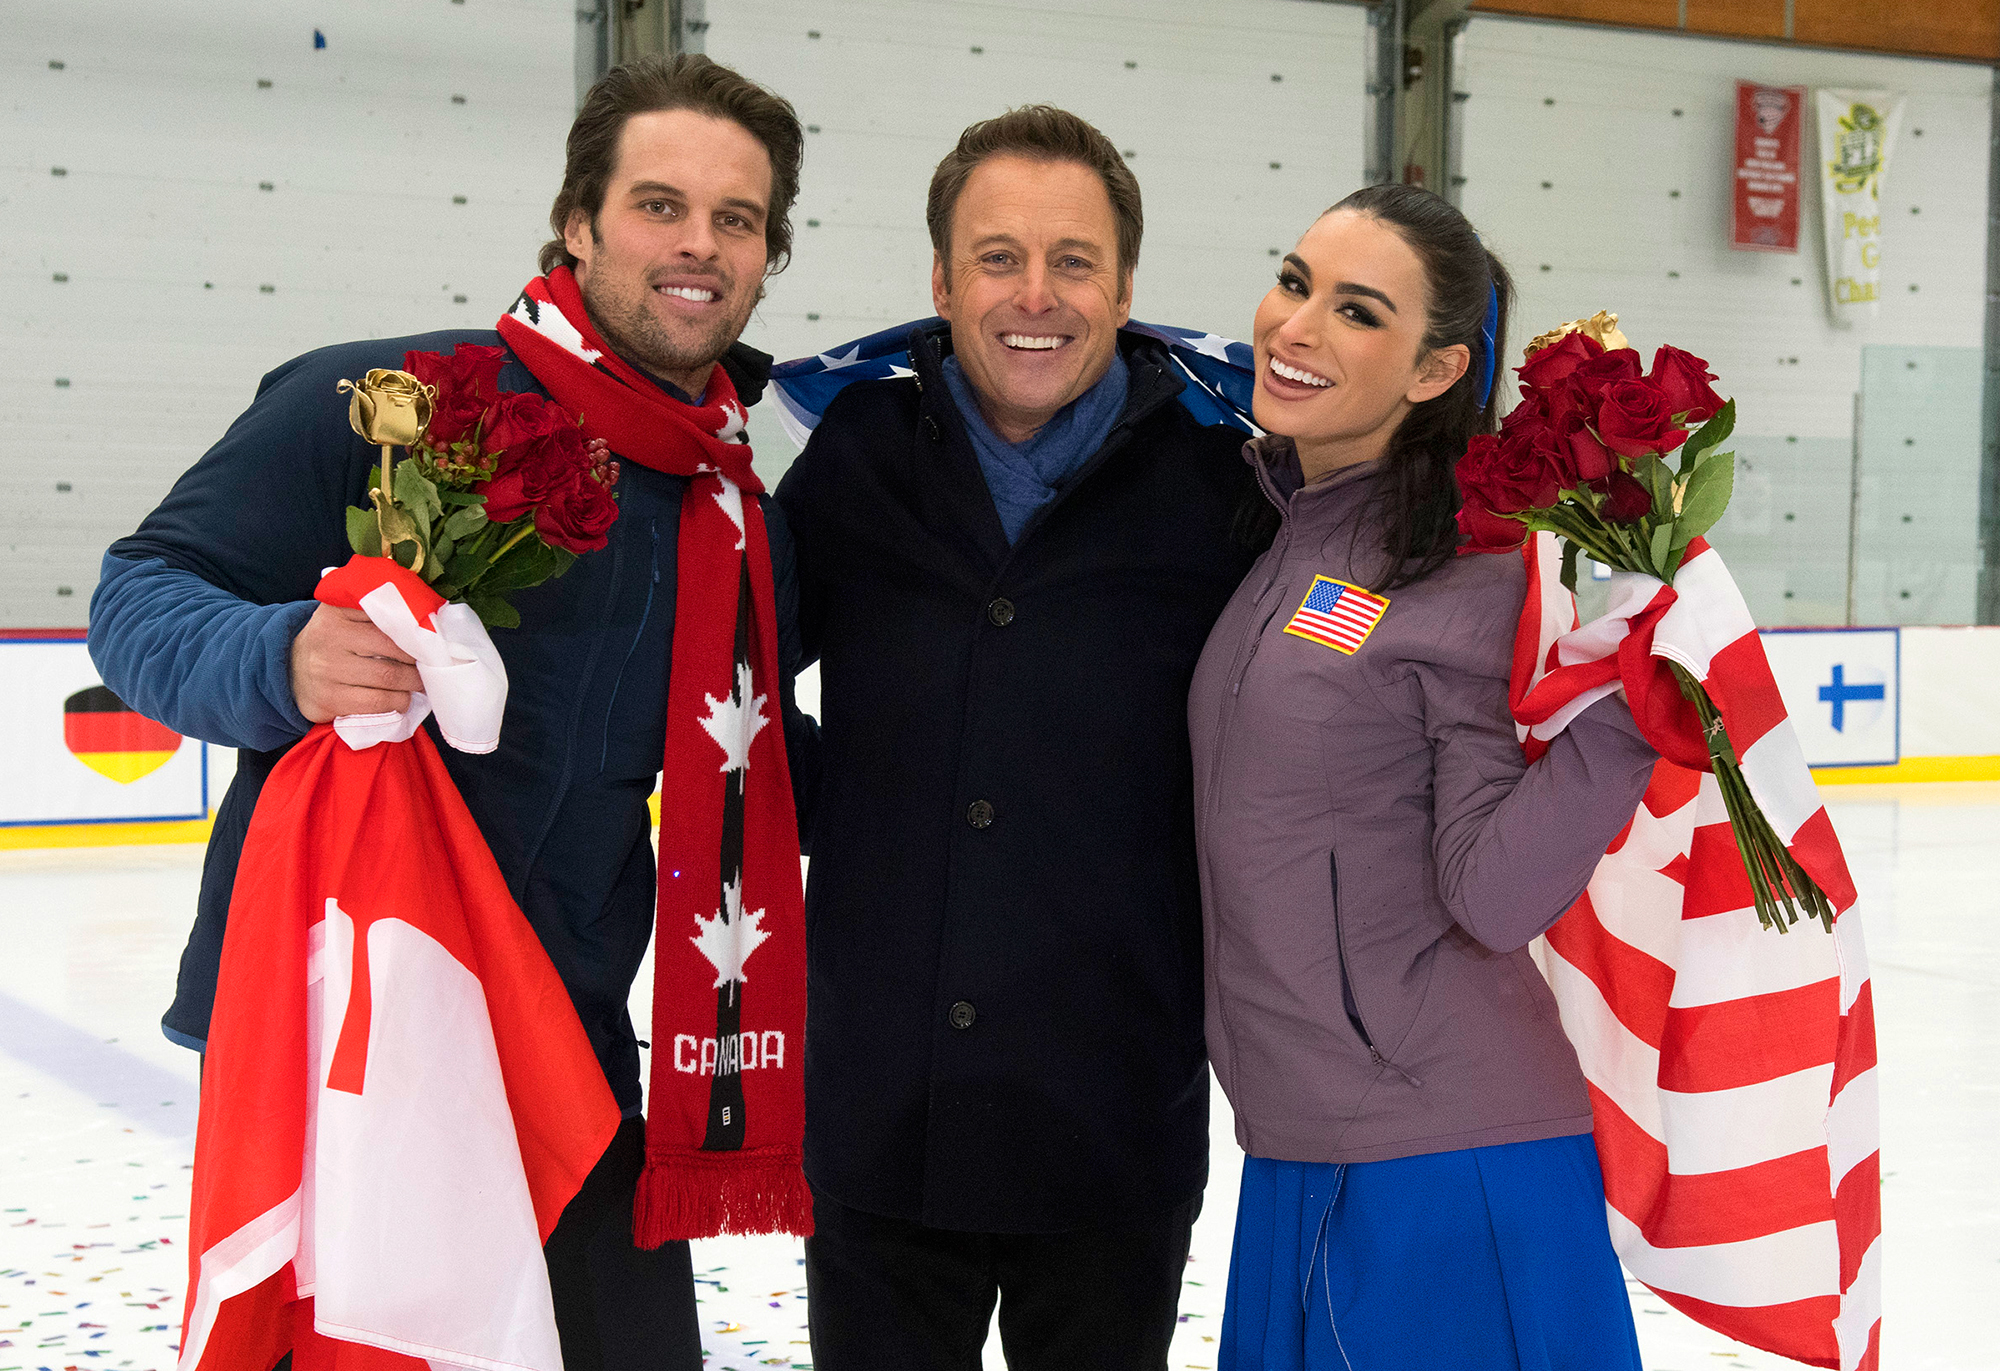 Bachelor Winter Games' Kevin Wendt & Ashley Iaconetti Split